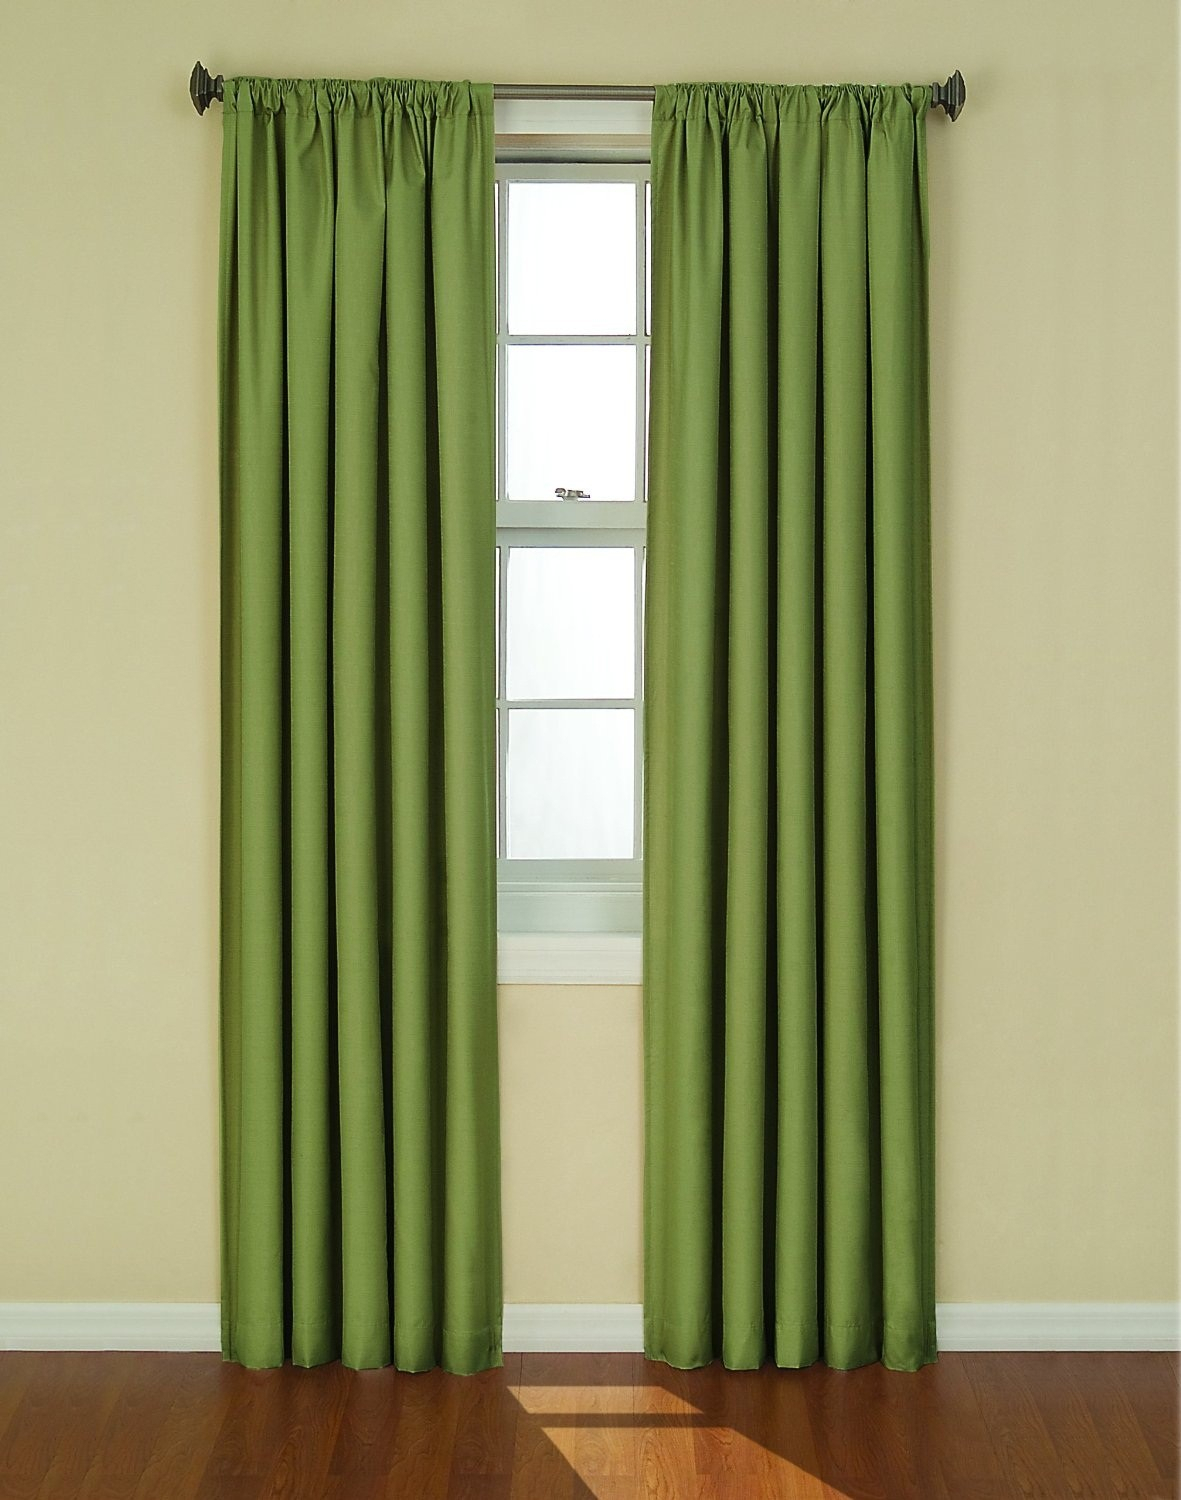 Eclipse Kendall Thermaback Blackout Curtain Panel Pertaining To Thermaback Blackout Window Curtains (View 15 of 30)